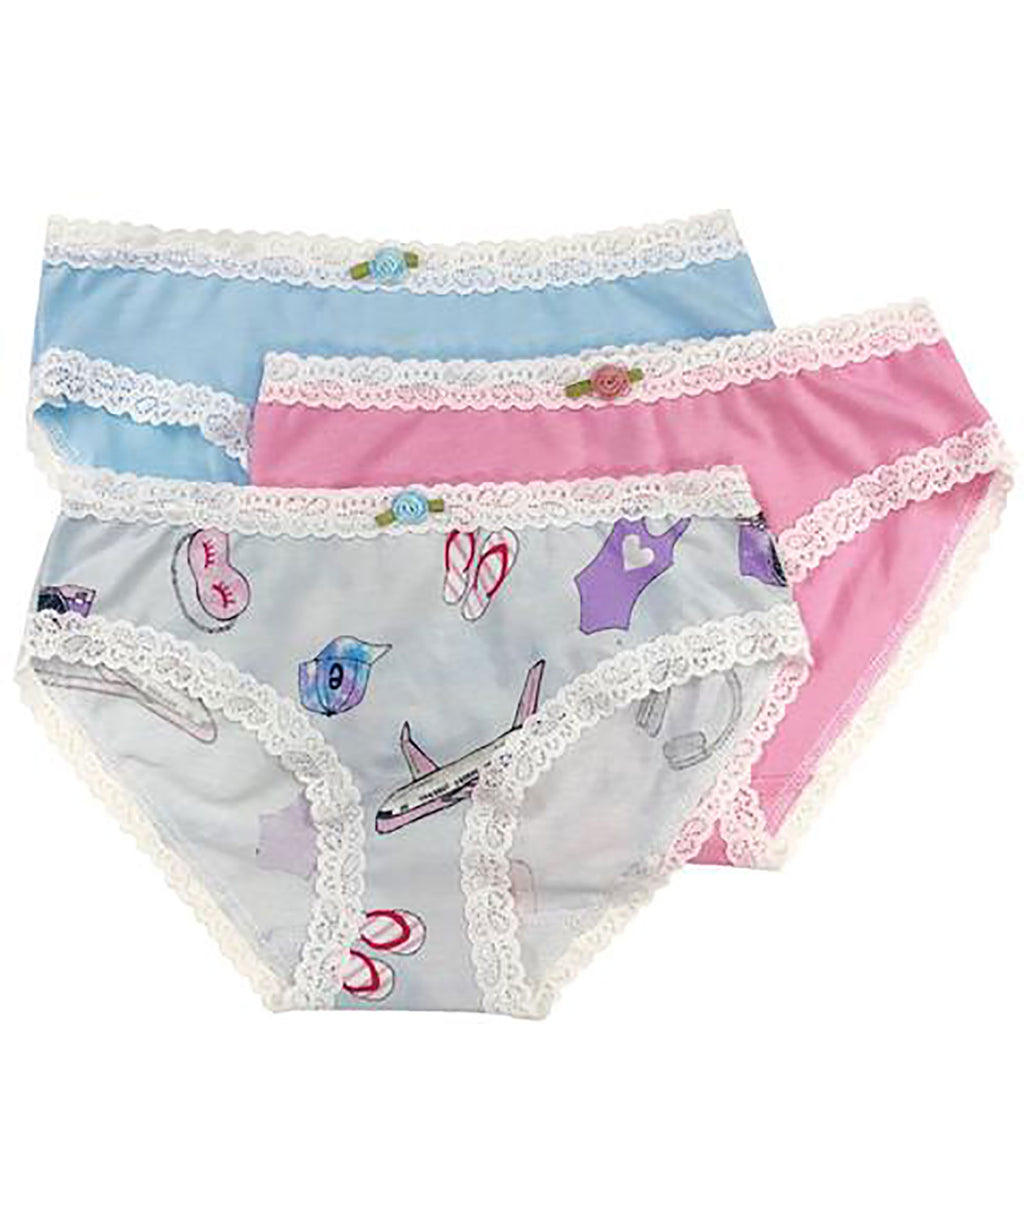 Esme Travel Panties Set